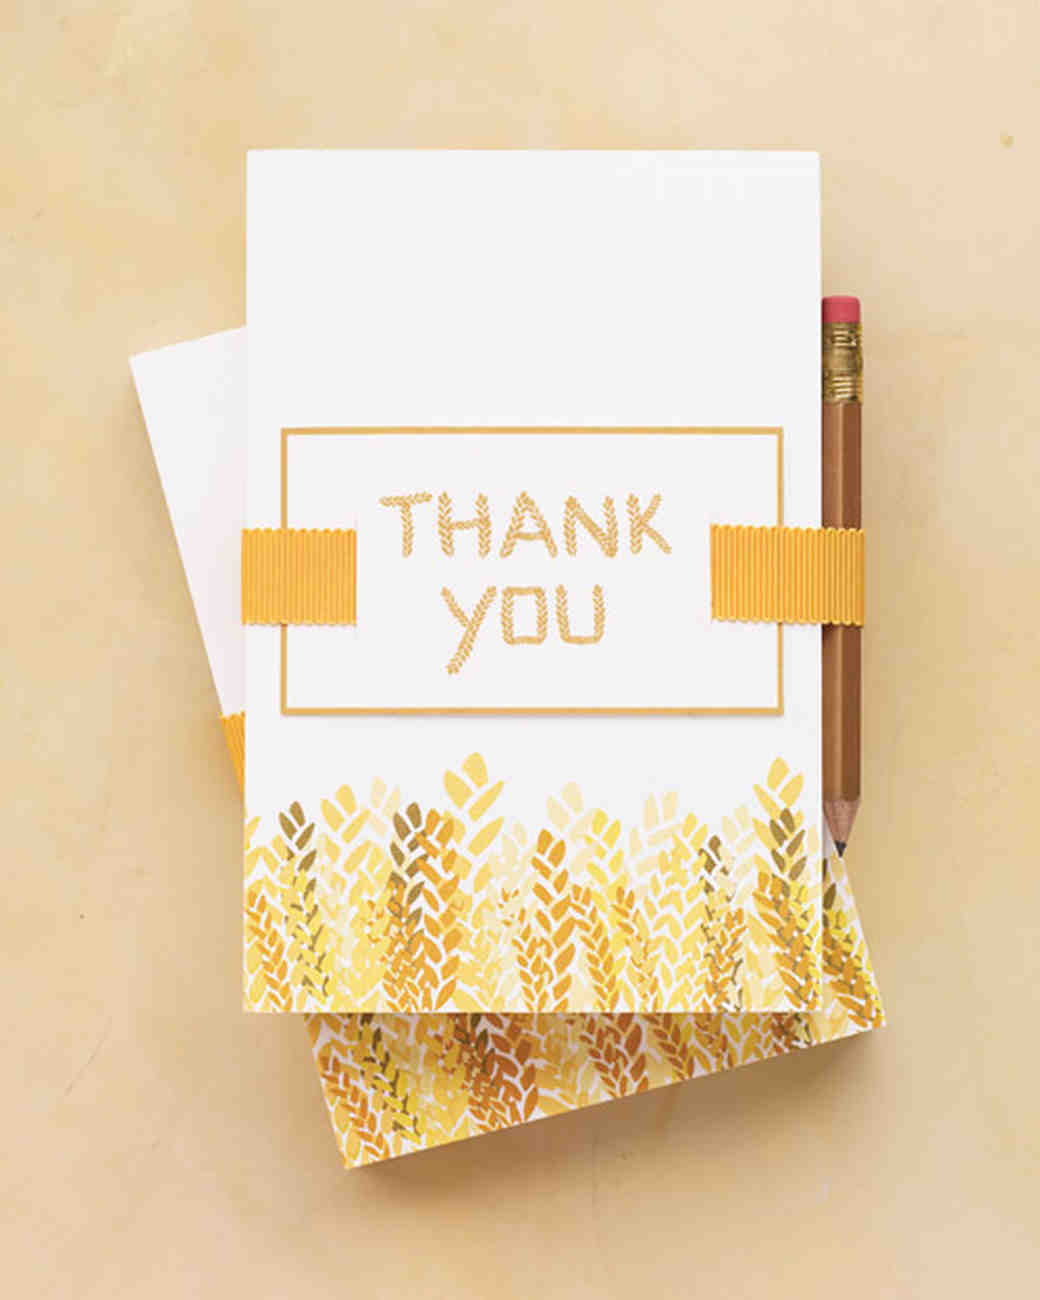 9 tips for writing thank you notes for wedding gifts martha 9 tips for writing thank you notes for wedding gifts martha stewart weddings colourmoves